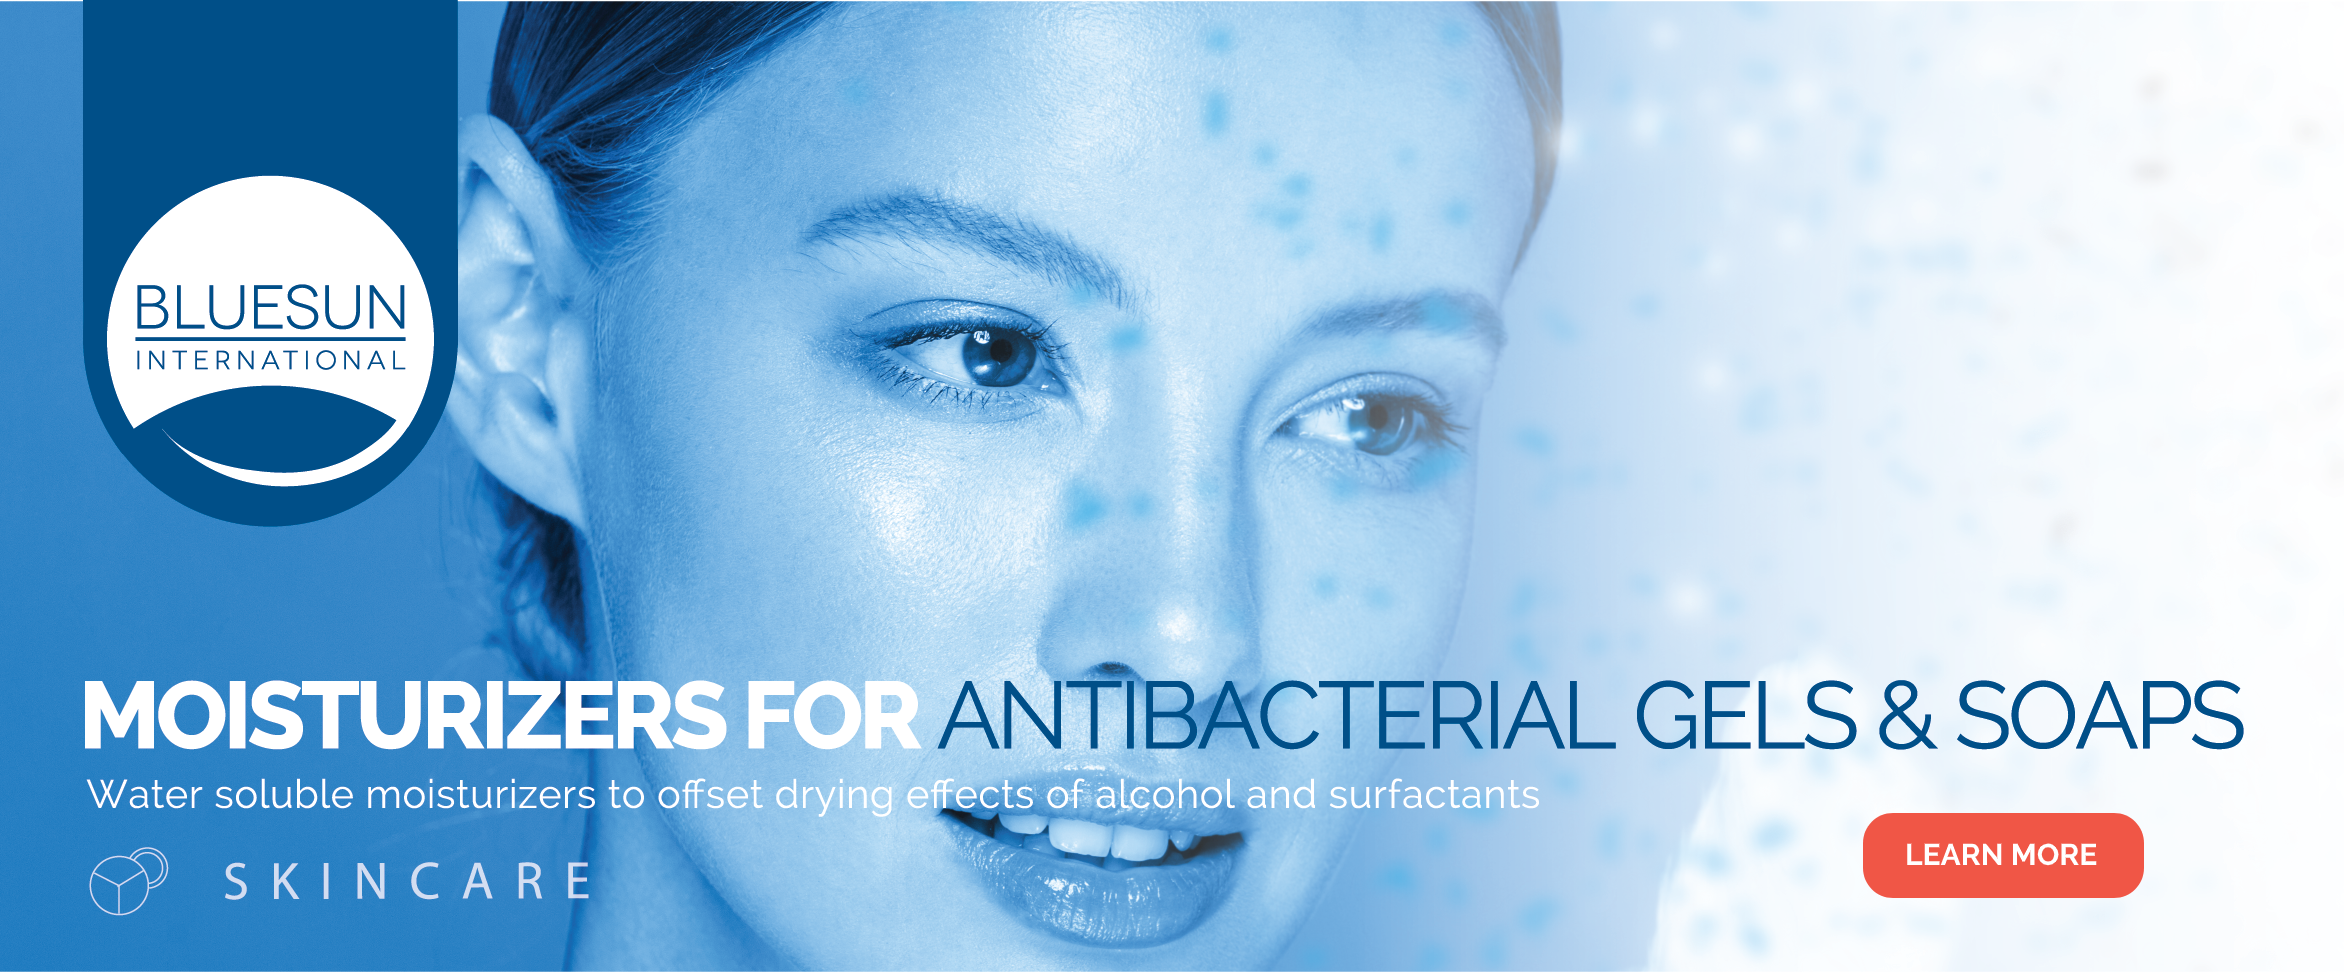 BLU - CTA post_Moisturizers_for_Antibacterial_Gels_&_Soaps